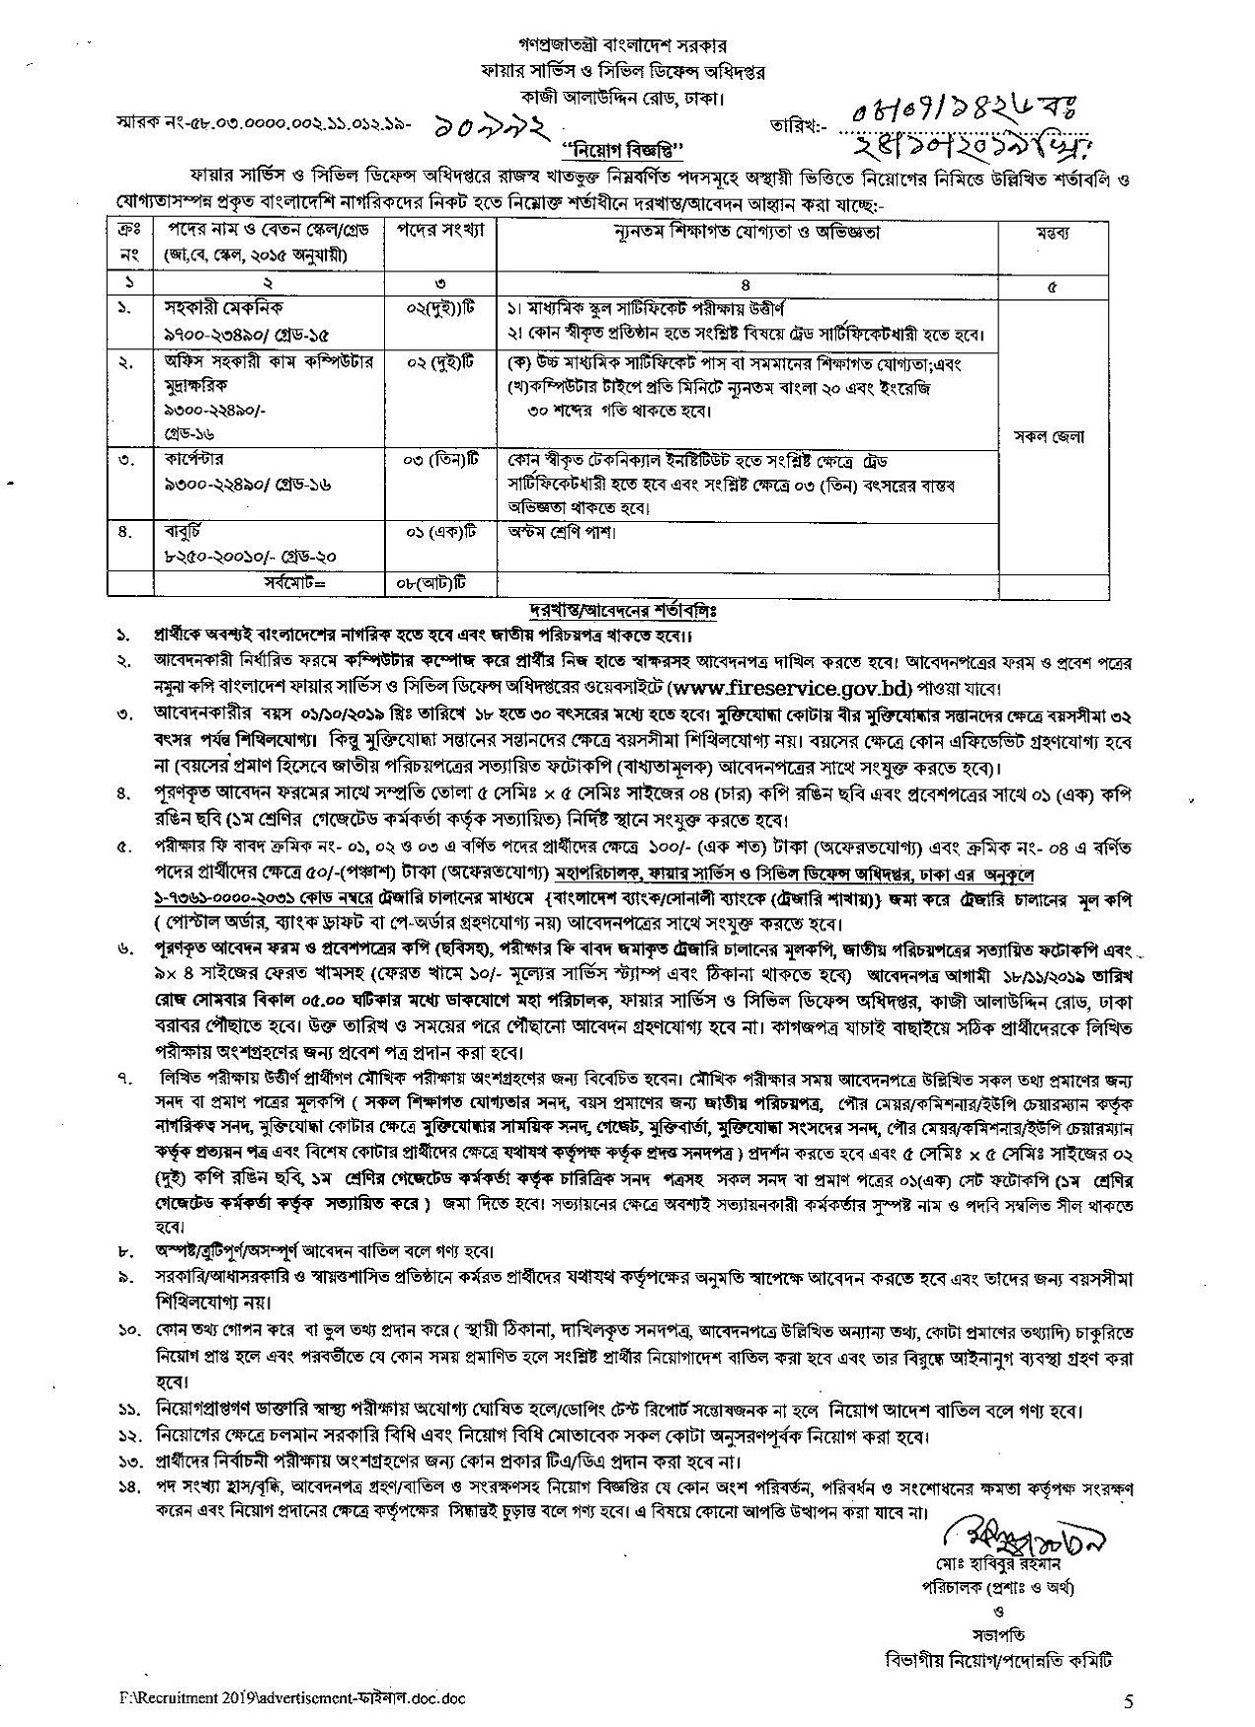 Fire Service and Civil Defense Job Circular 2019